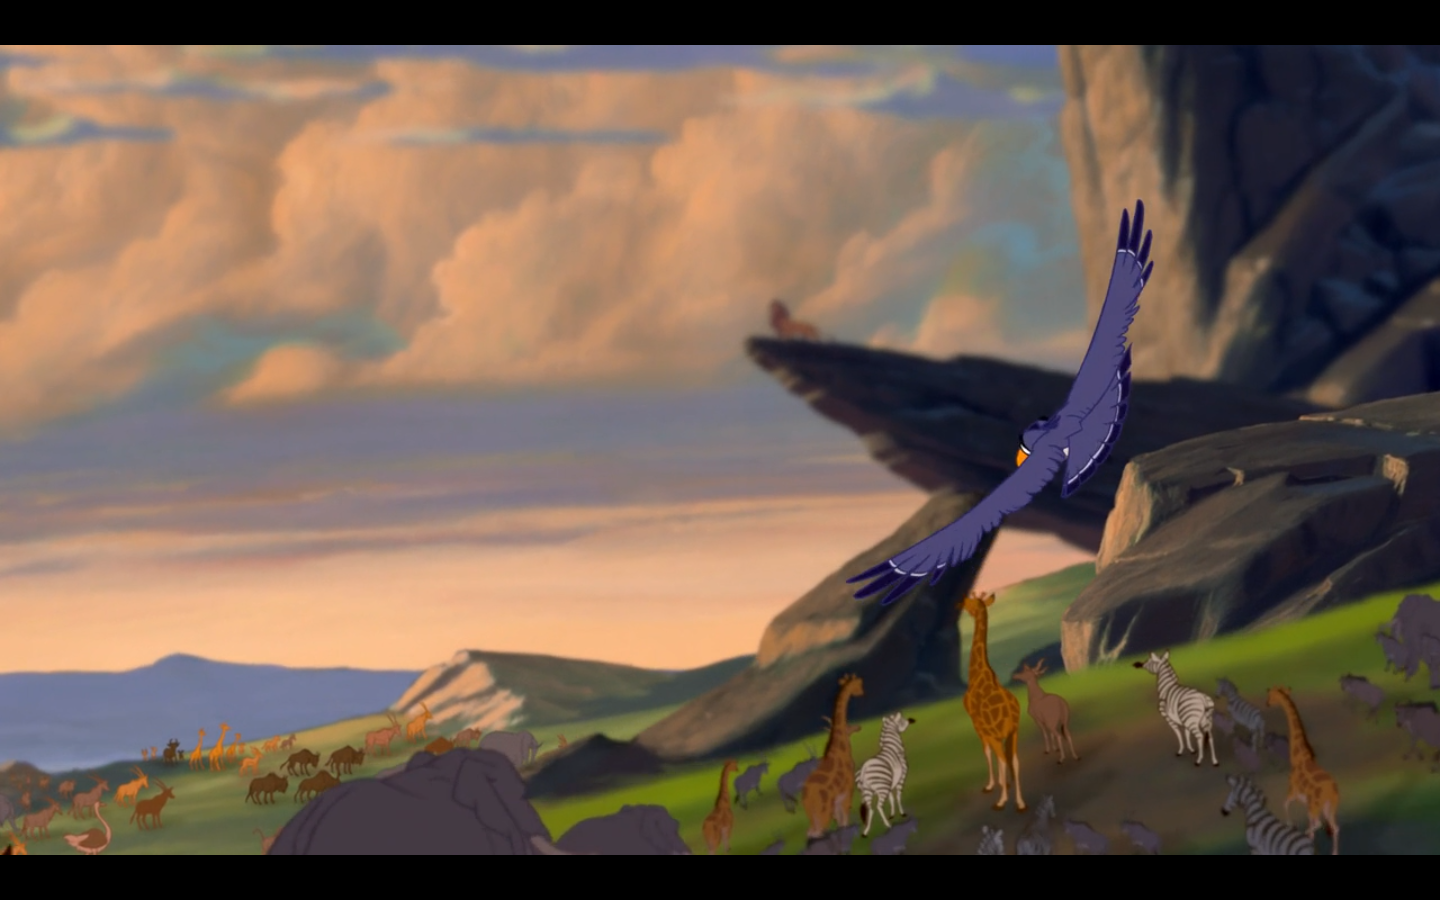 Lion king pride rock scene - photo#10